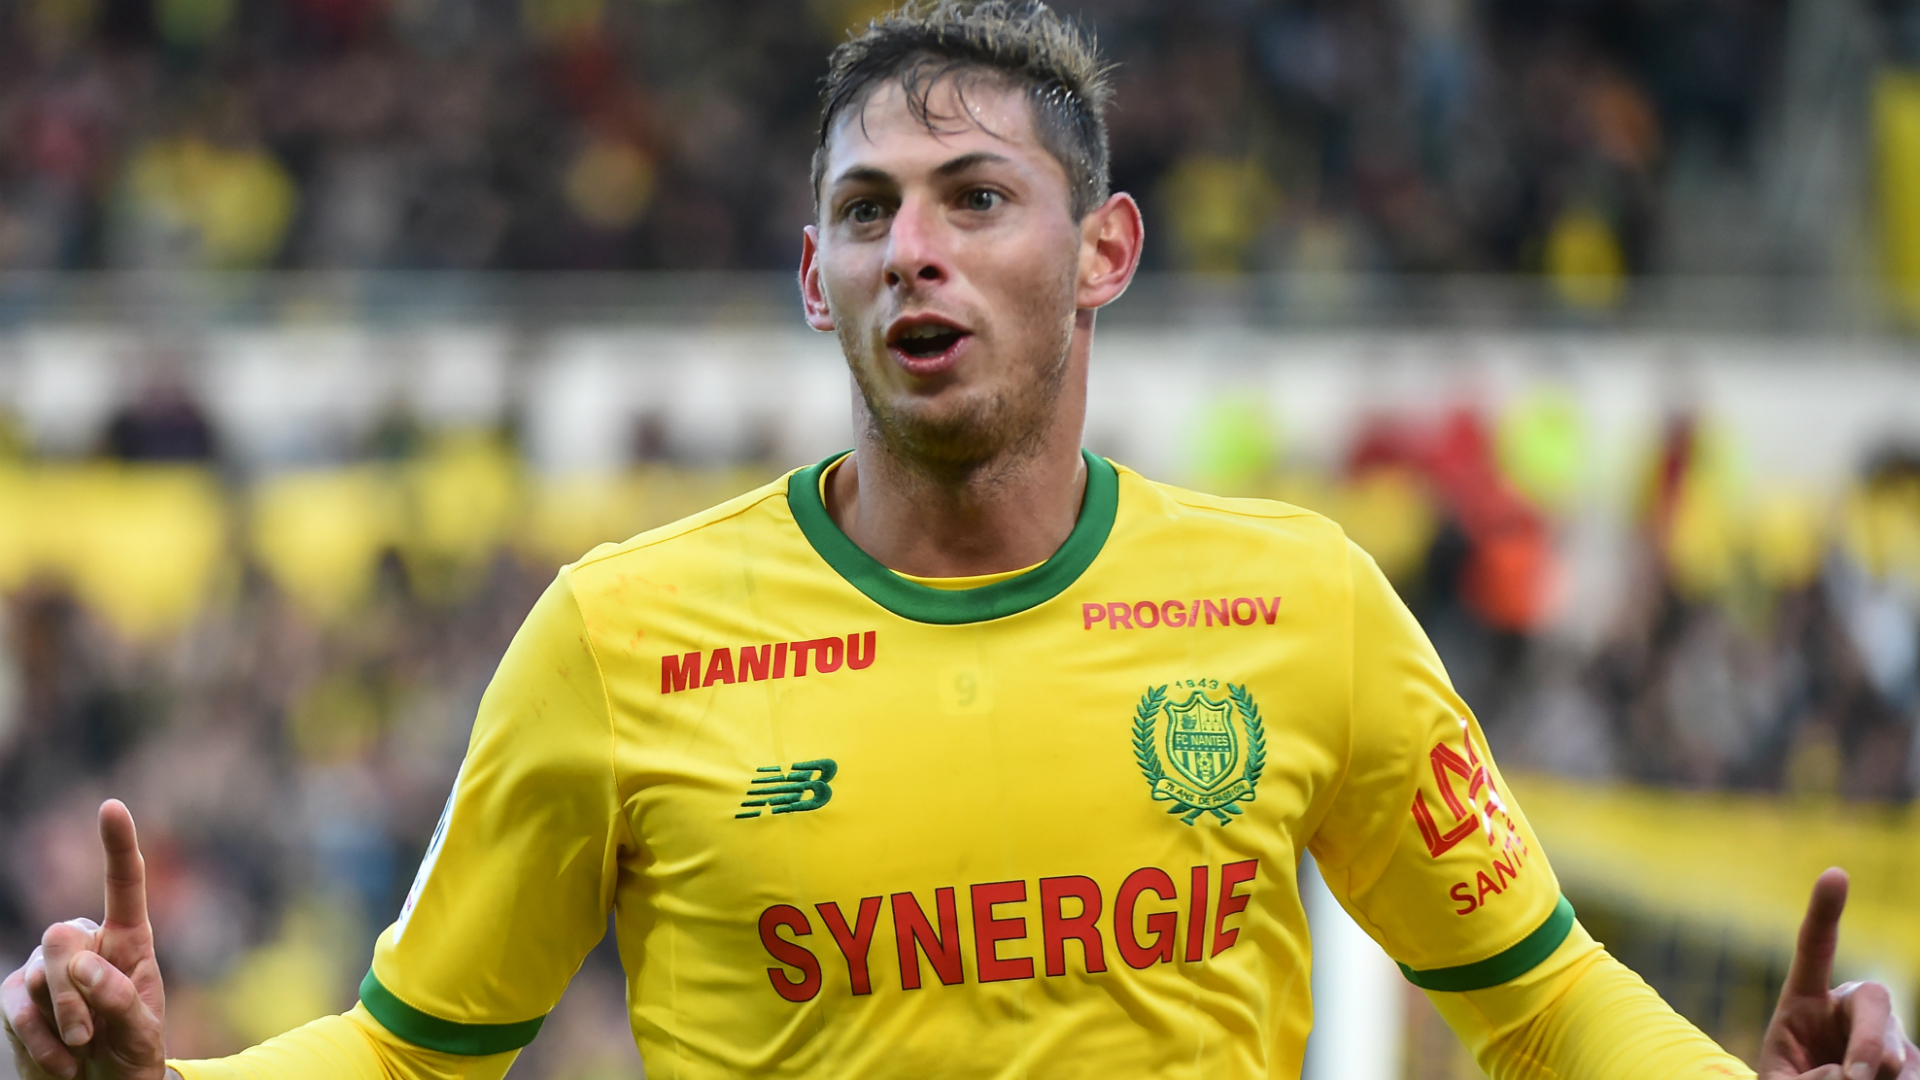 """The AAIB says Emiliano Sala was exposed to carbon monoxide before a fatal plane crash. Cardiff City are """"concerned"""" by the findings."""